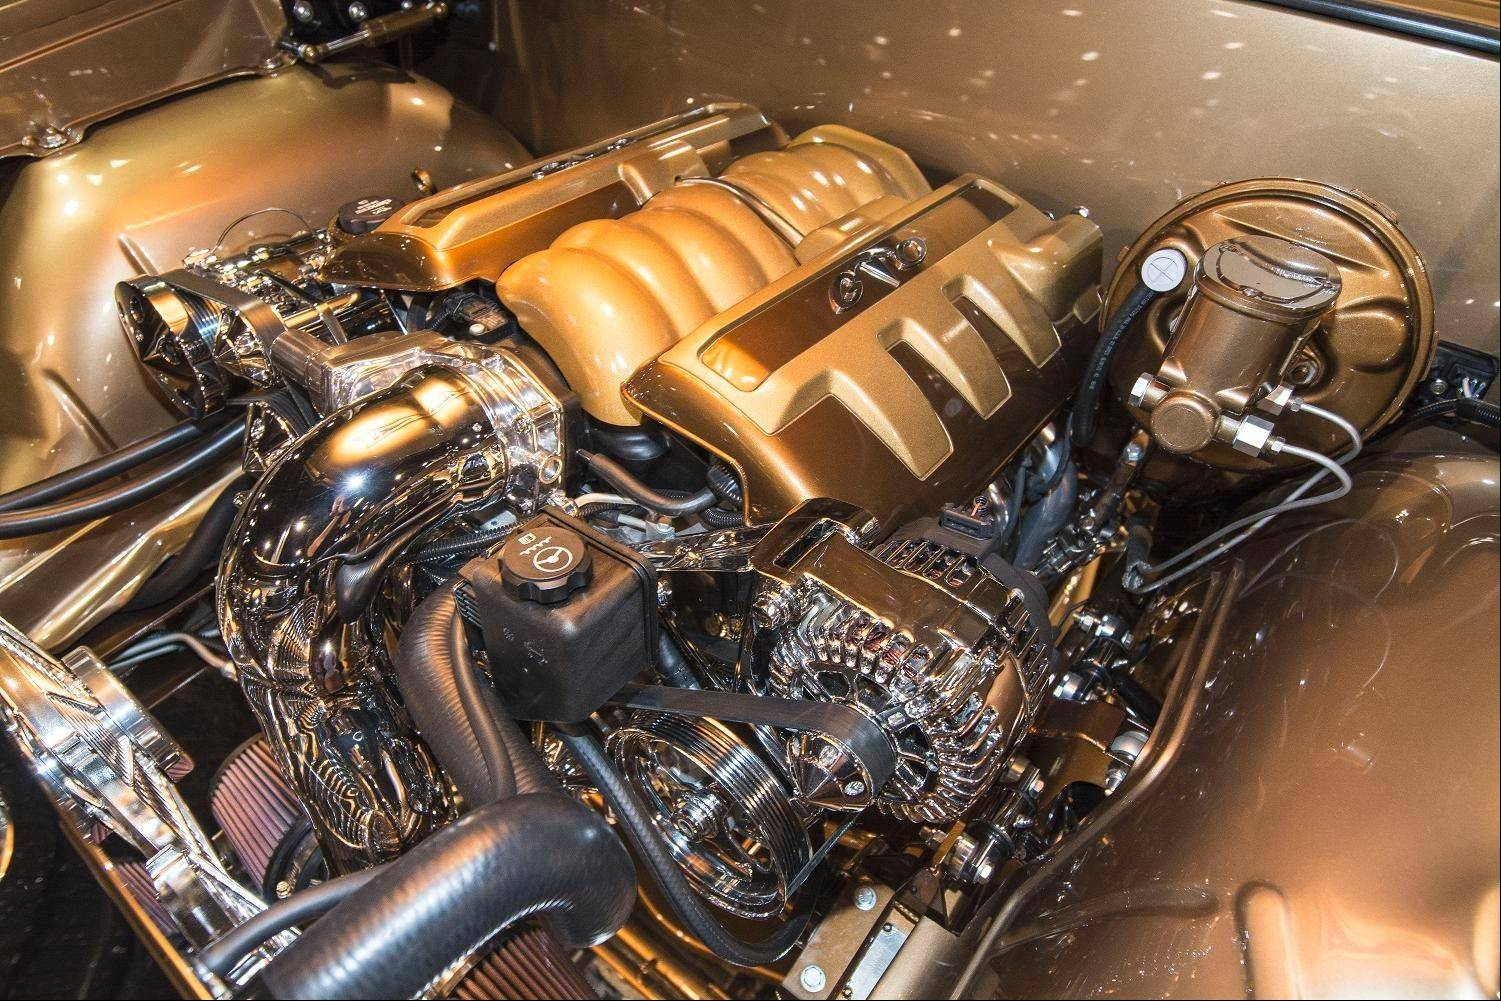 Modern fuel-injection technology has replaced the GTO's original V-8 engine.